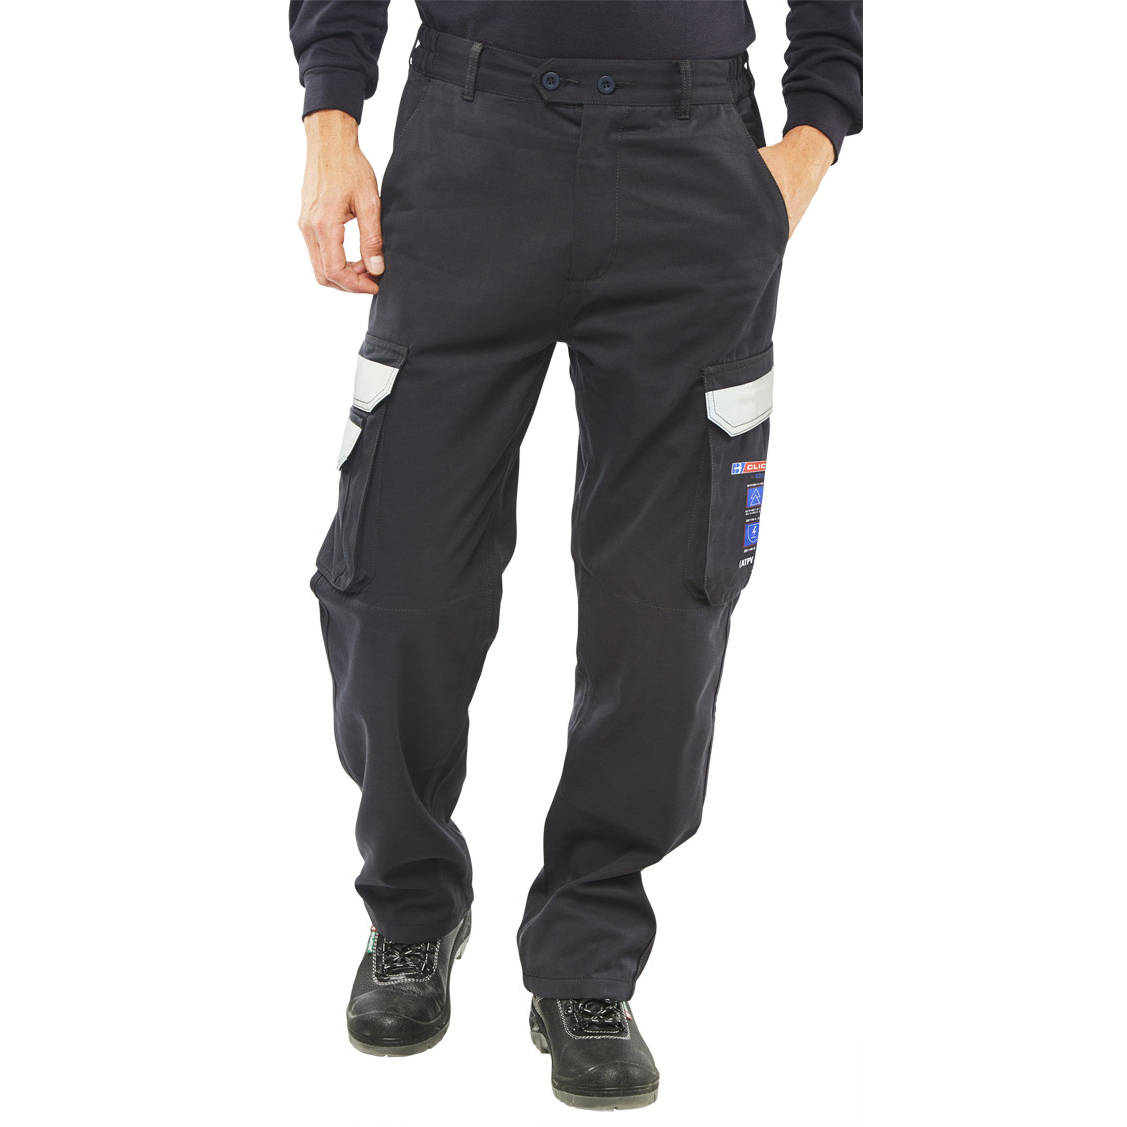 Fire Retardant / Flame Resistant Click Arc Flash Trousers Fire Retardant Navy Blue 44-Tall Ref CARC4N44T *Up to 3 Day Leadtime*